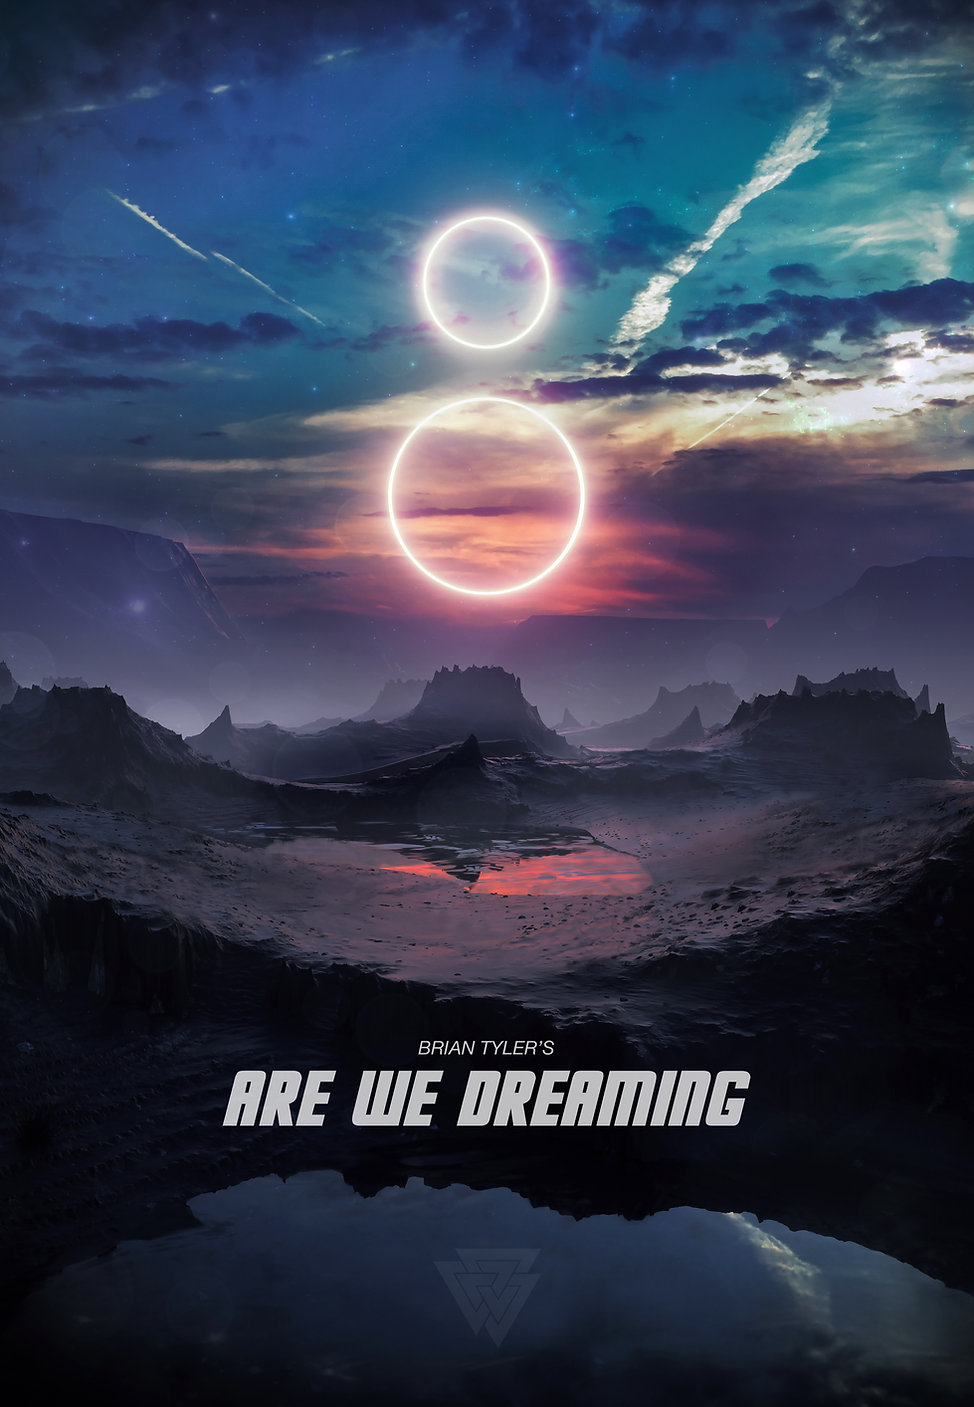 Are we dreaming poster emailtext.JPEG